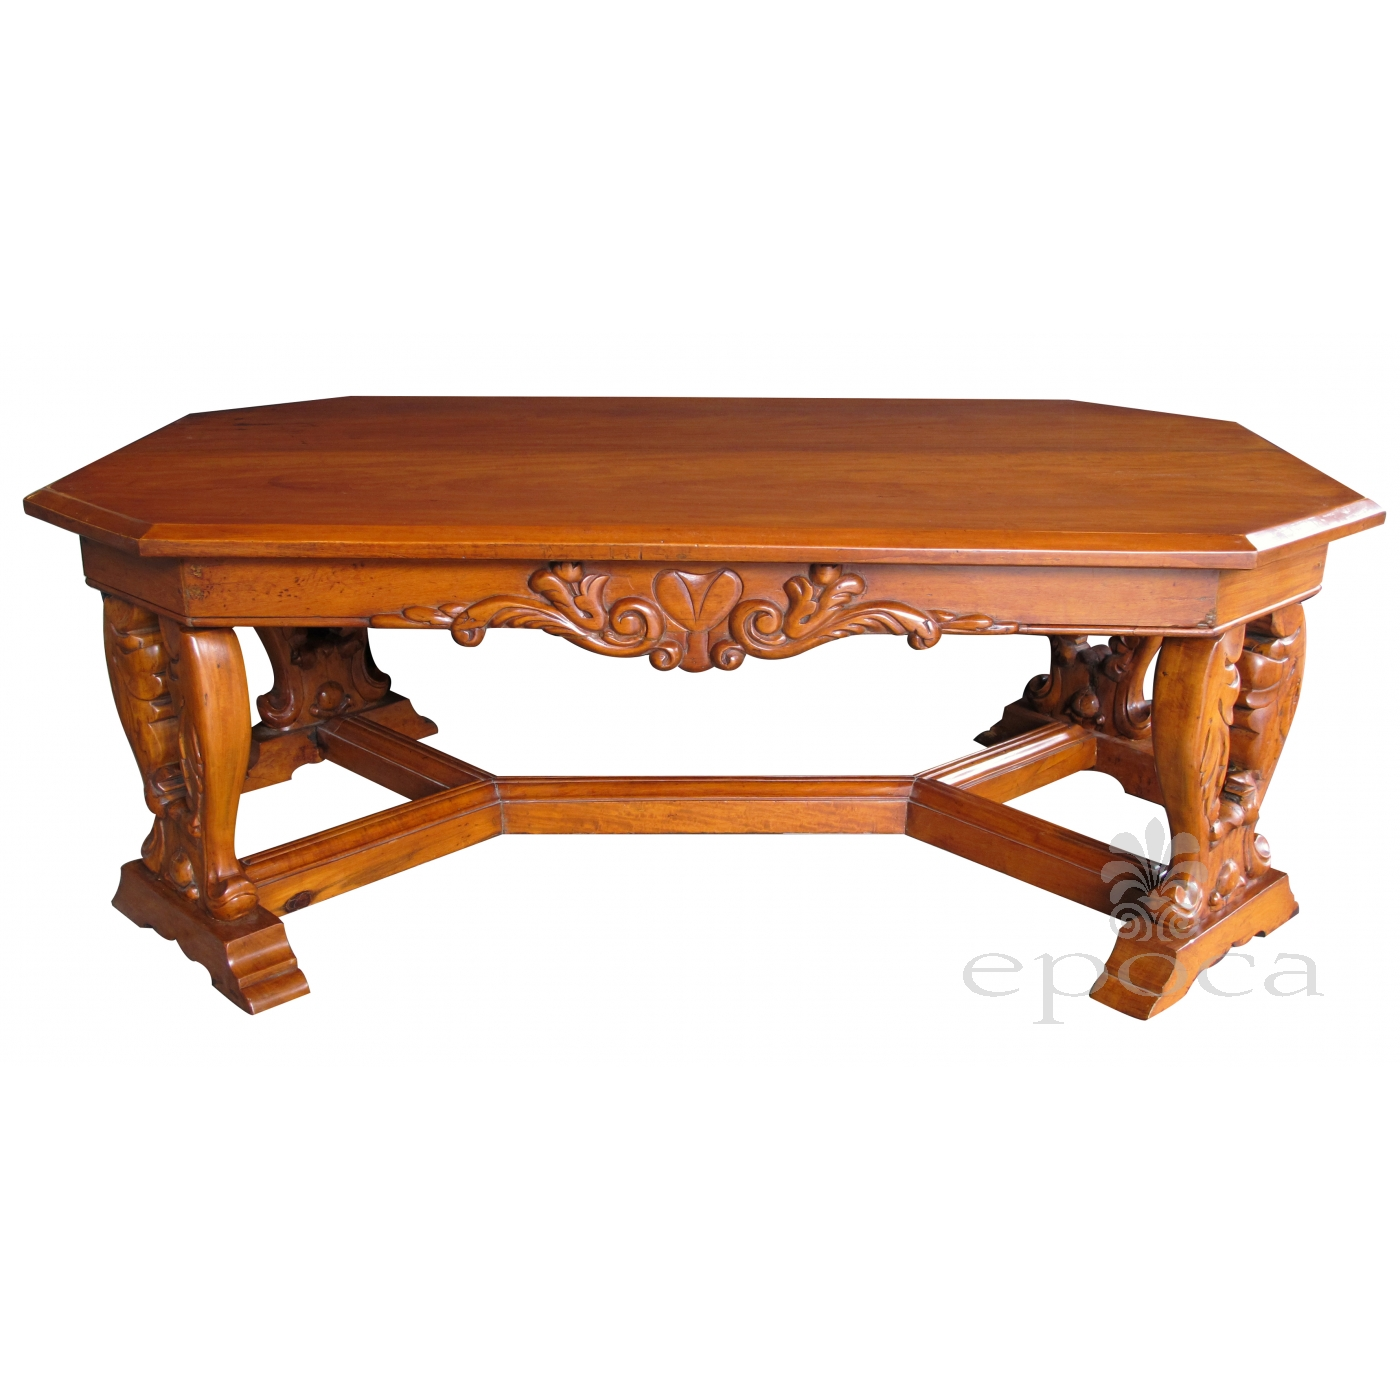 A Handsome And Boldly Carved French Baroque Style Cherrywood Coffee Table  With Canted Corners